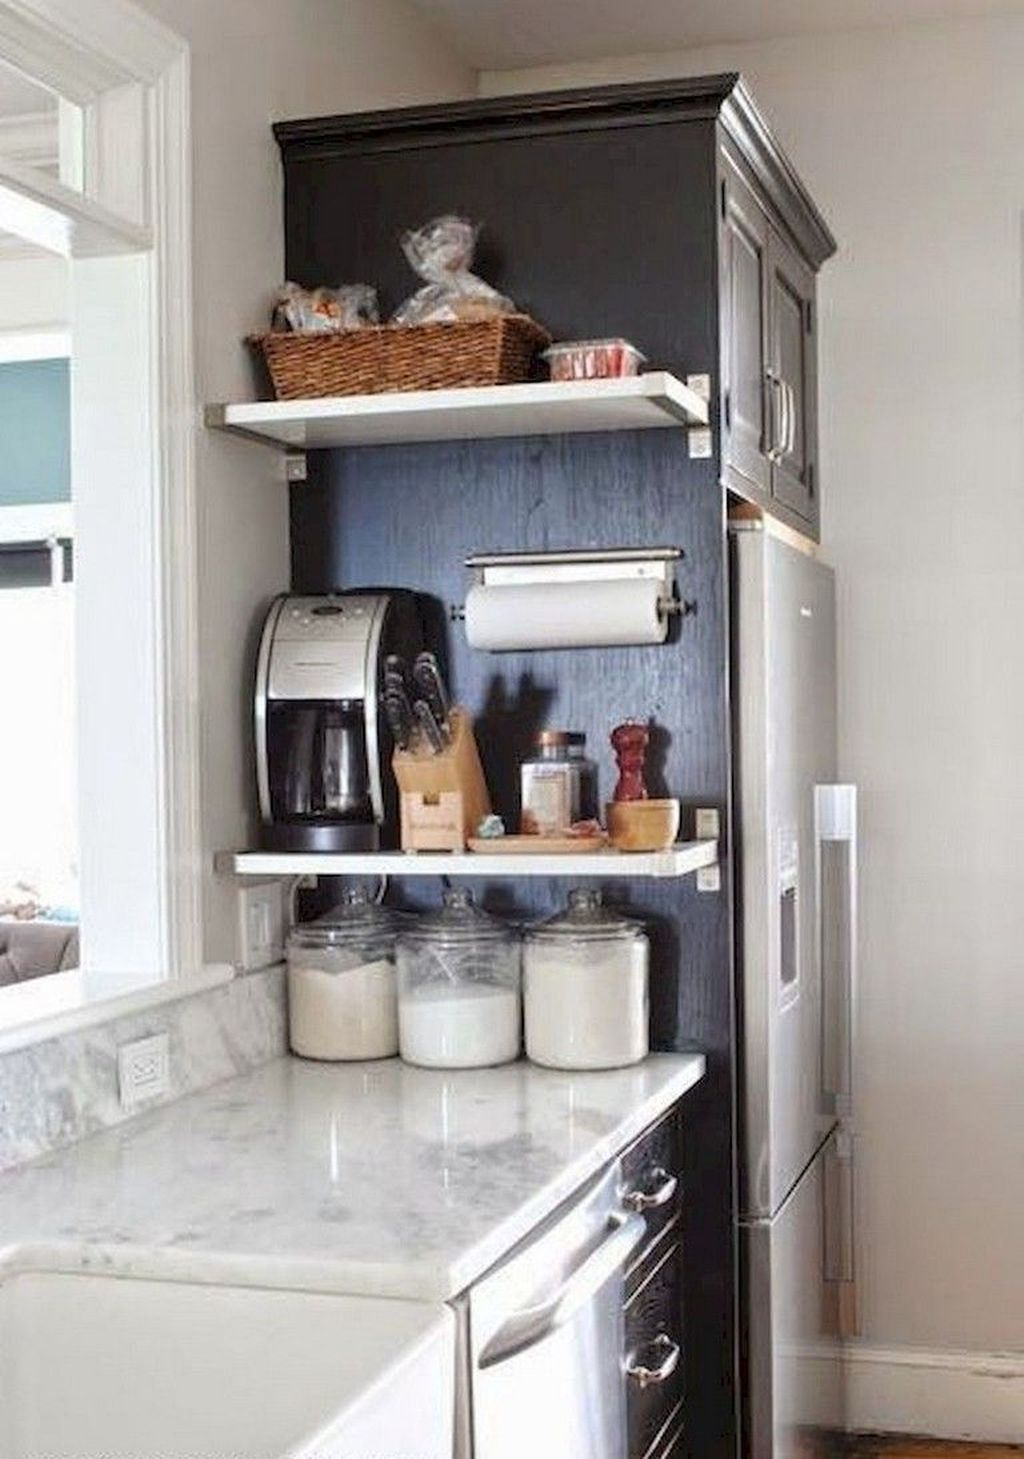 46 Adorable Kitchen Organization Ideas For Small Apartment Small Apartment Kitchen Decor Kitchen Decor Apartment Small Apartment Kitchen